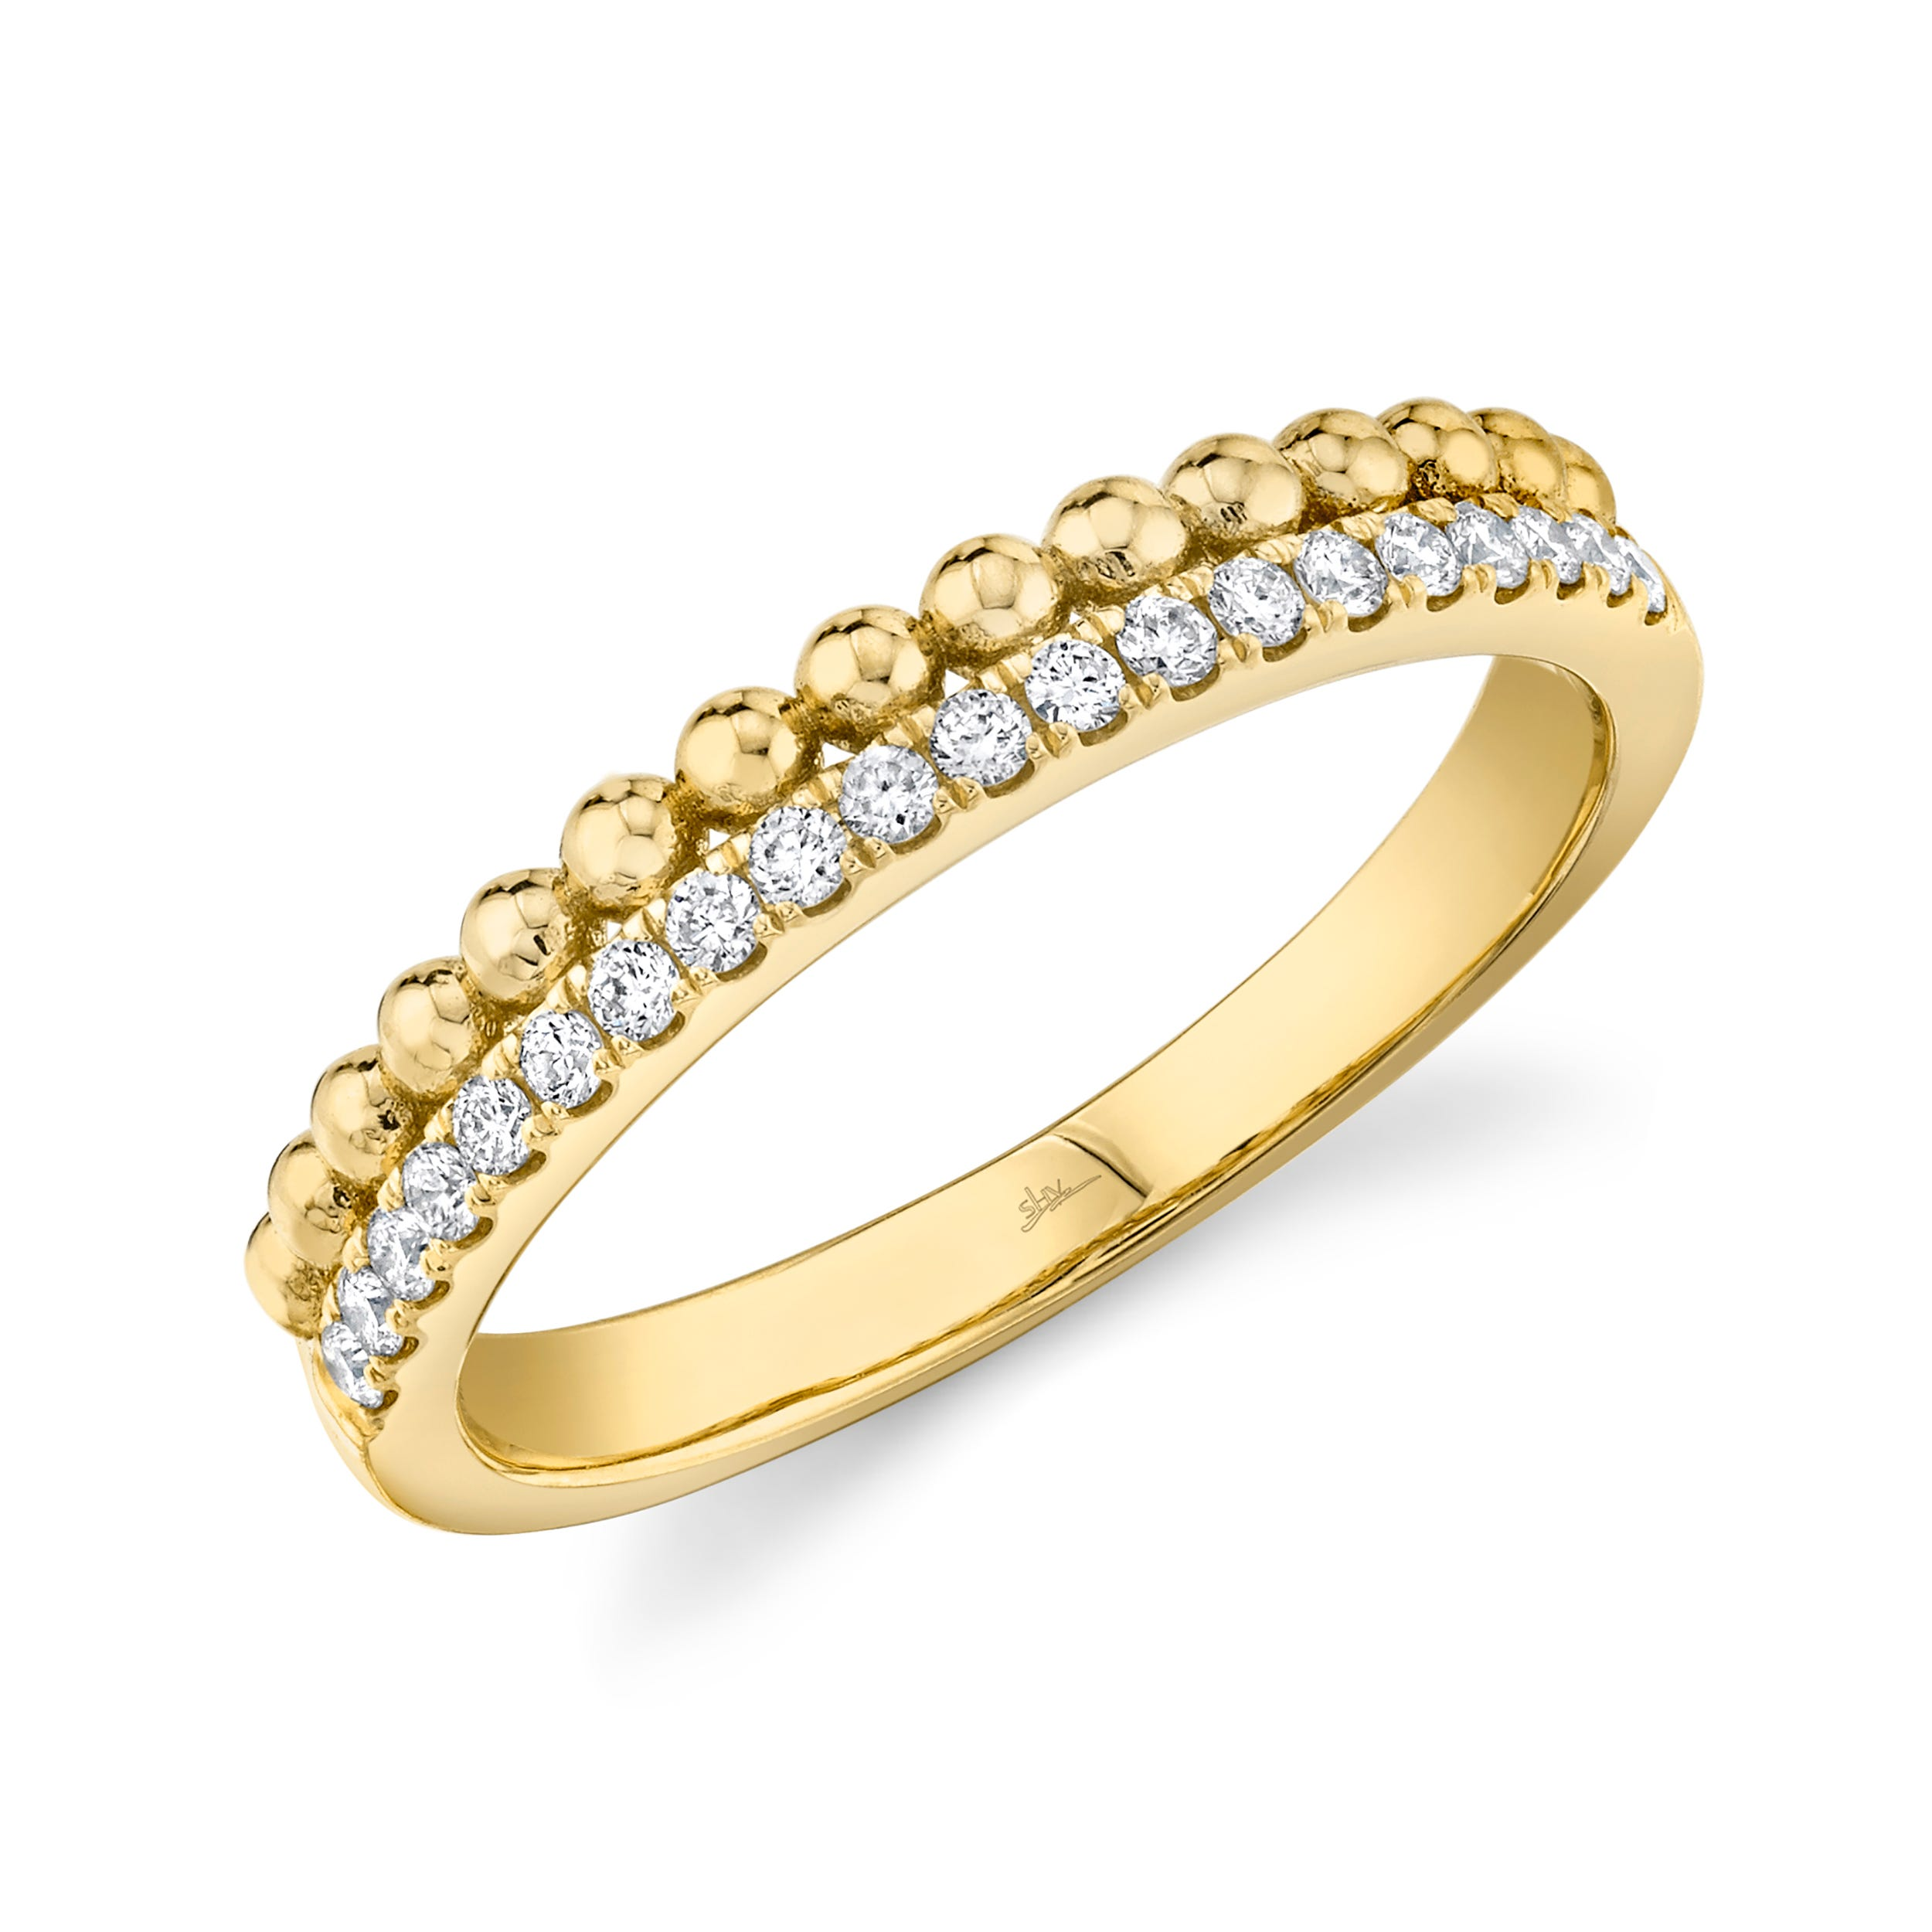 Shy Creation Diamond Stackable Bead Ring in 14k Yellow Gold SC22005647